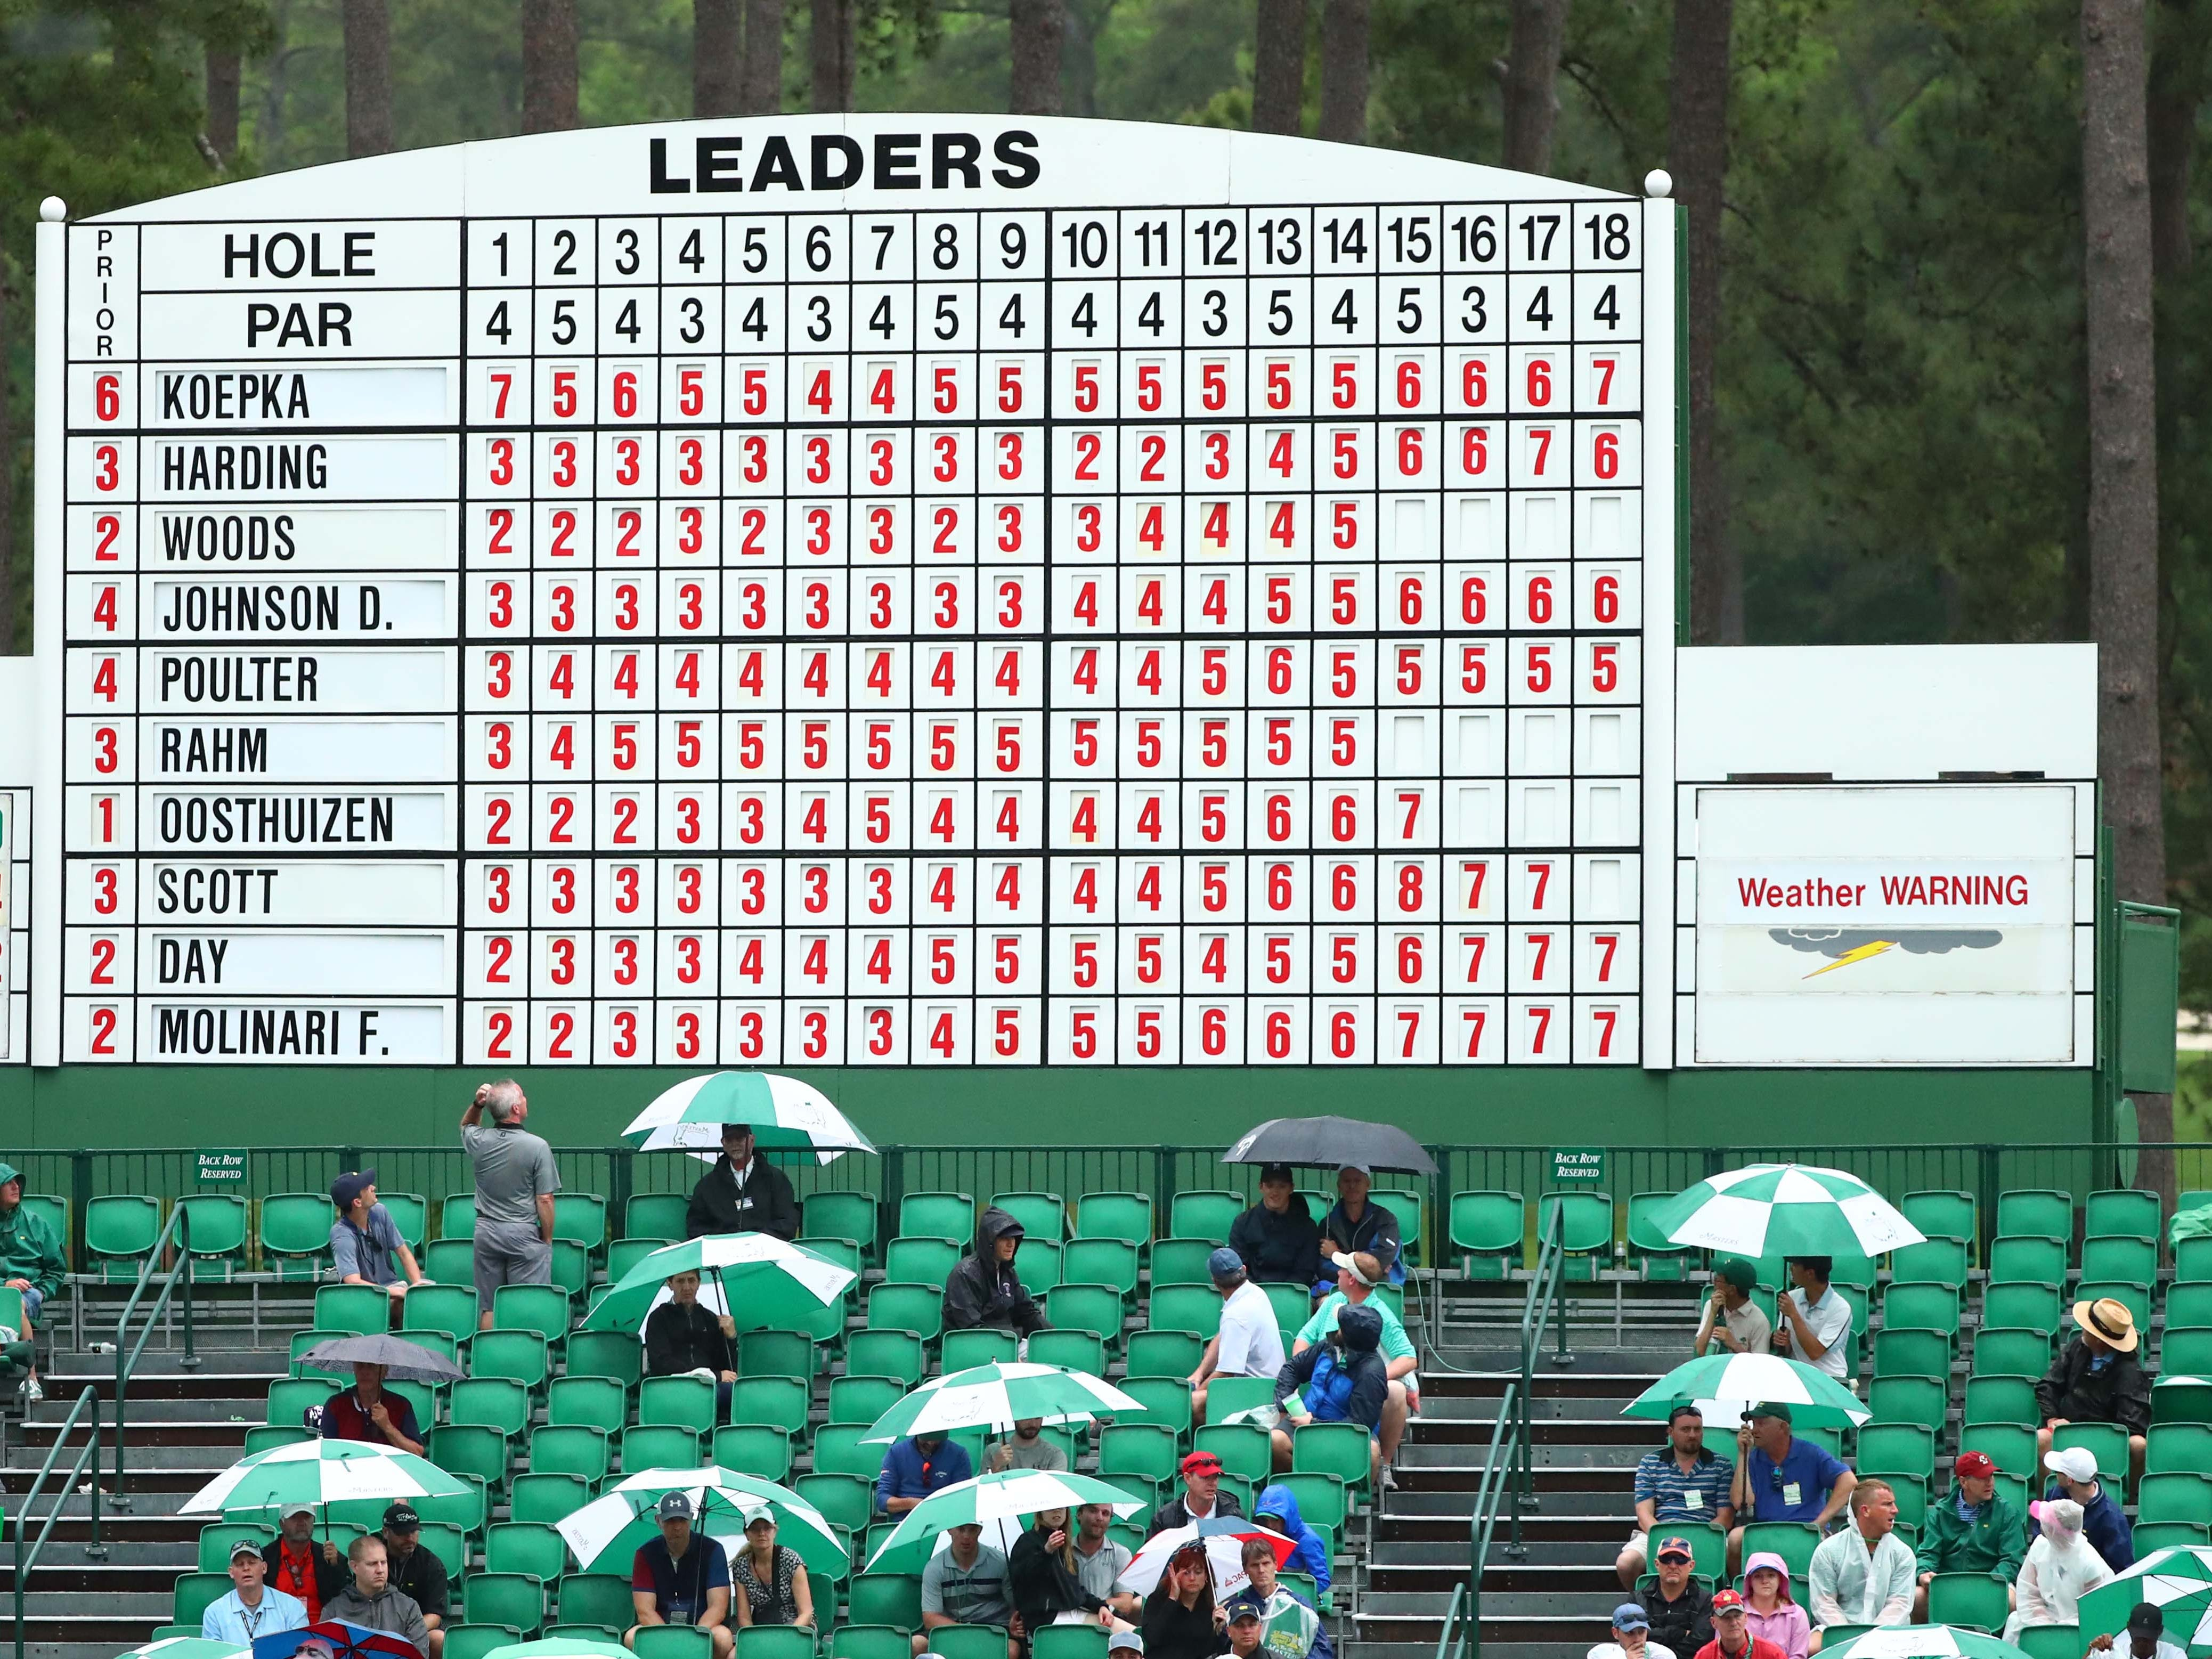 Apr 12, 2019; Augusta, GA, USA; A weather warning is displayed on the leaderboard on the 15th hole during the second round of The Masters golf tournament at Augusta National Golf Club. Mandatory Credit: Rob Schumacher-USA TODAY Sports